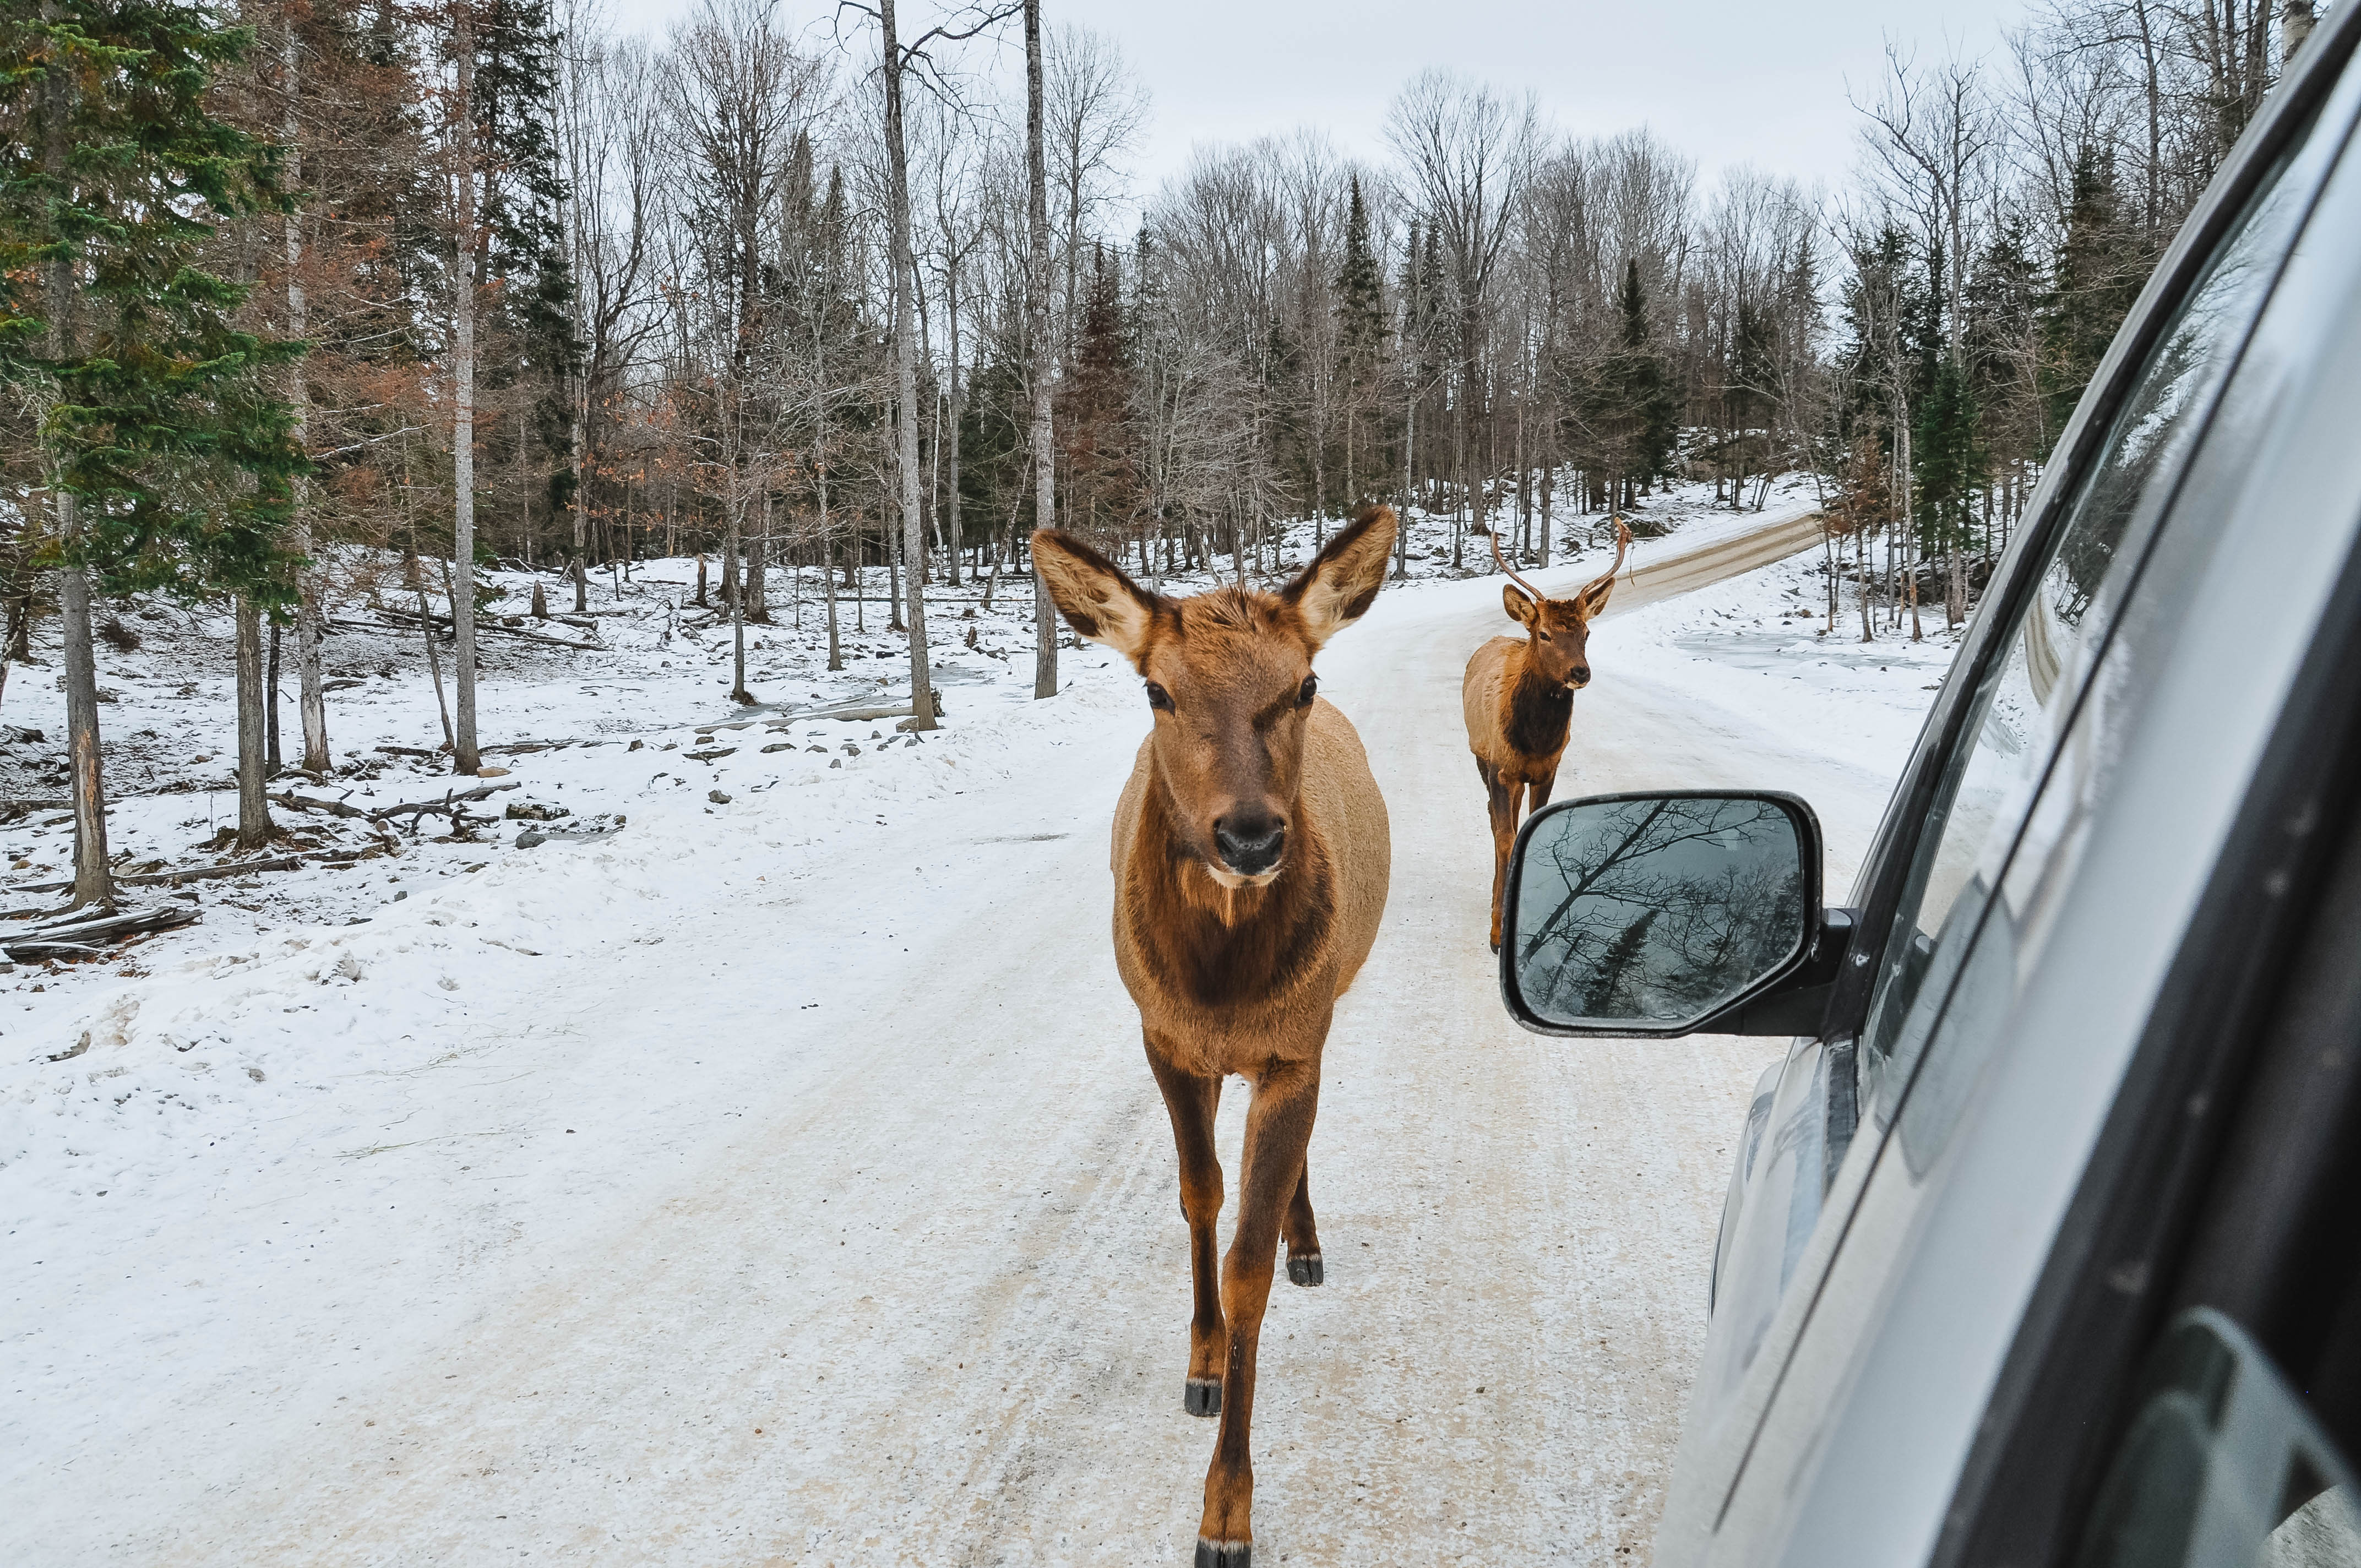 Visiting Omega Park in Quebec, Canada in the Winter